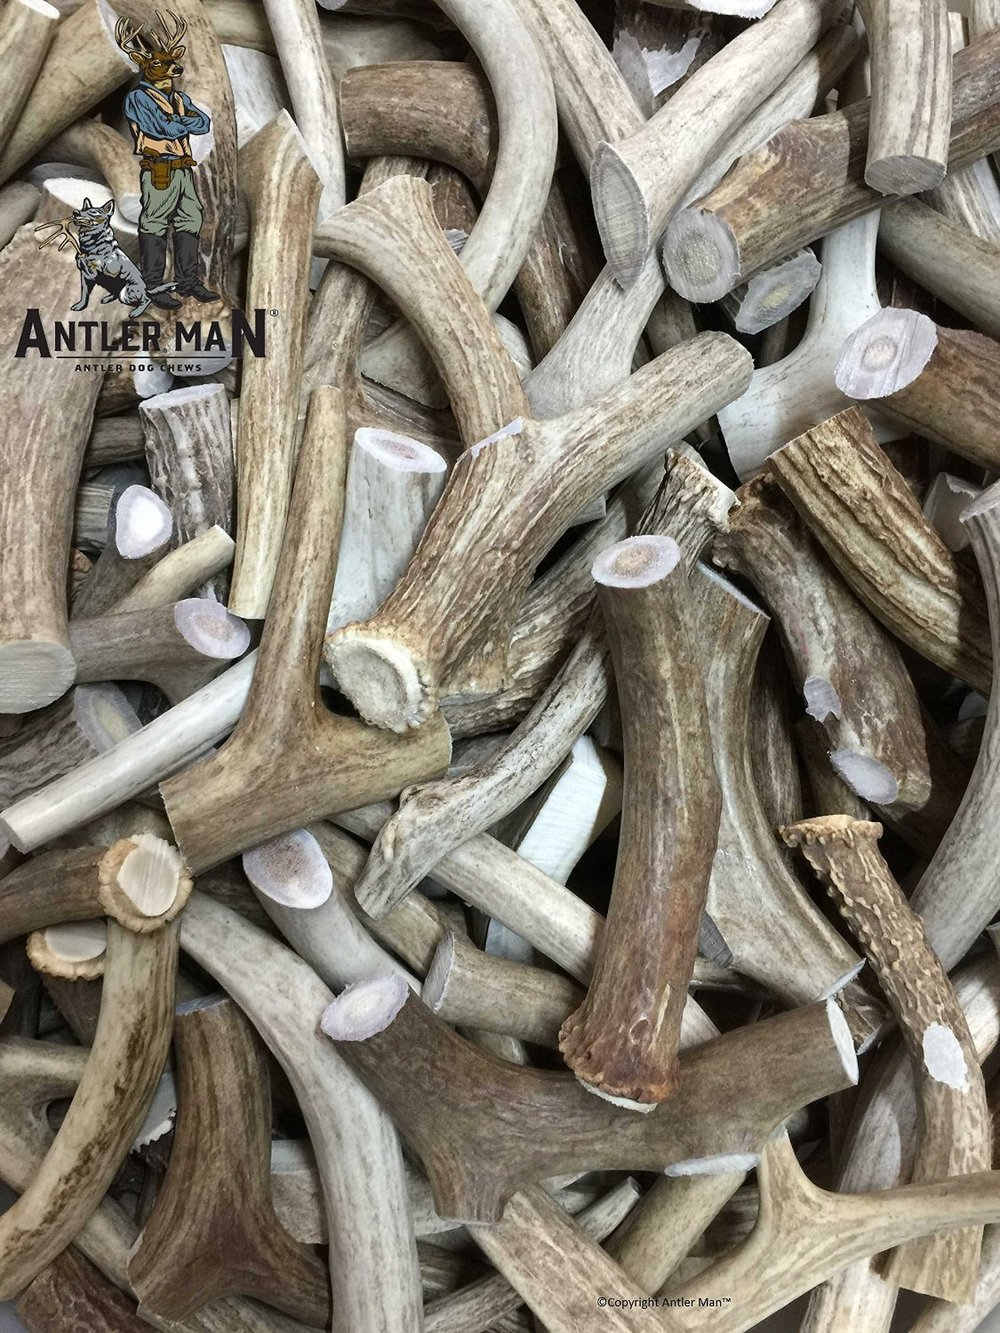 ANTLER MAN® Premium Deer Antler Pieces - Dog Chews - Antlers By The Pound